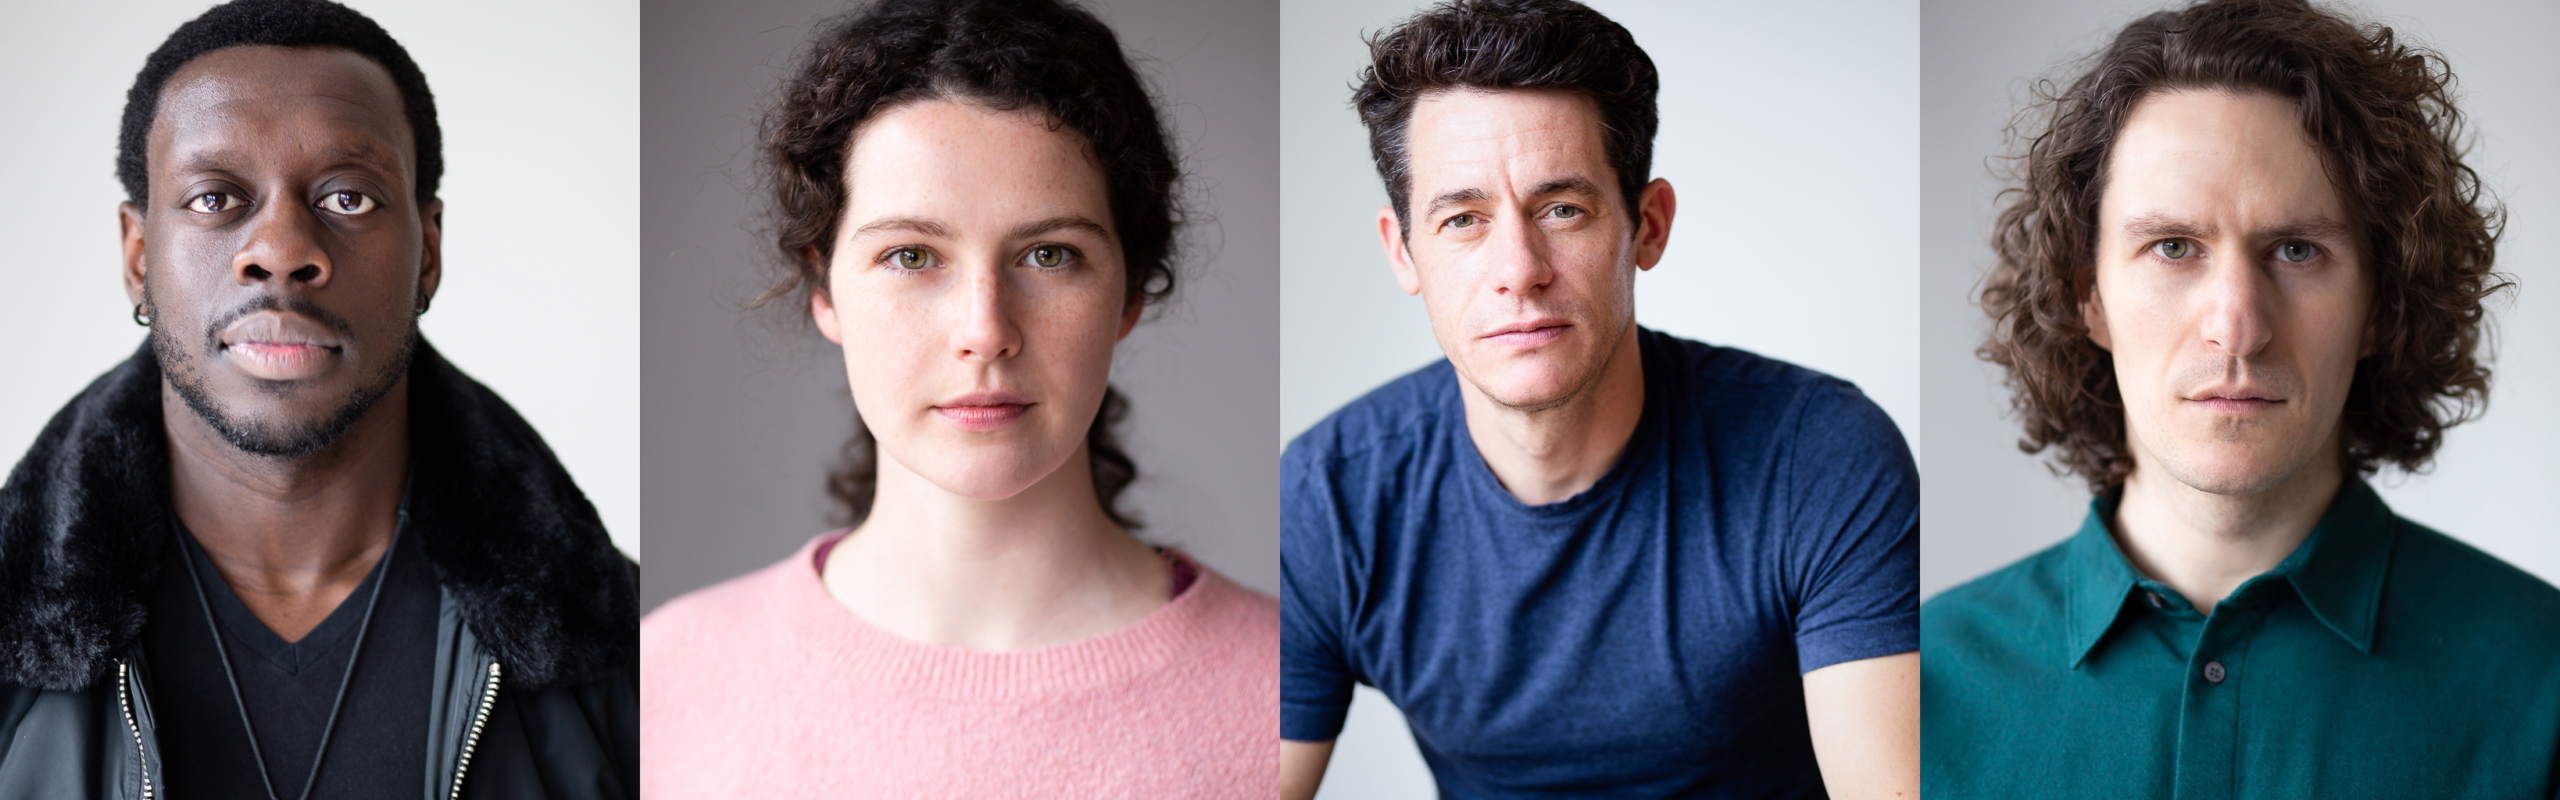 Different Actor Headshots Images by Arthur John Wilson